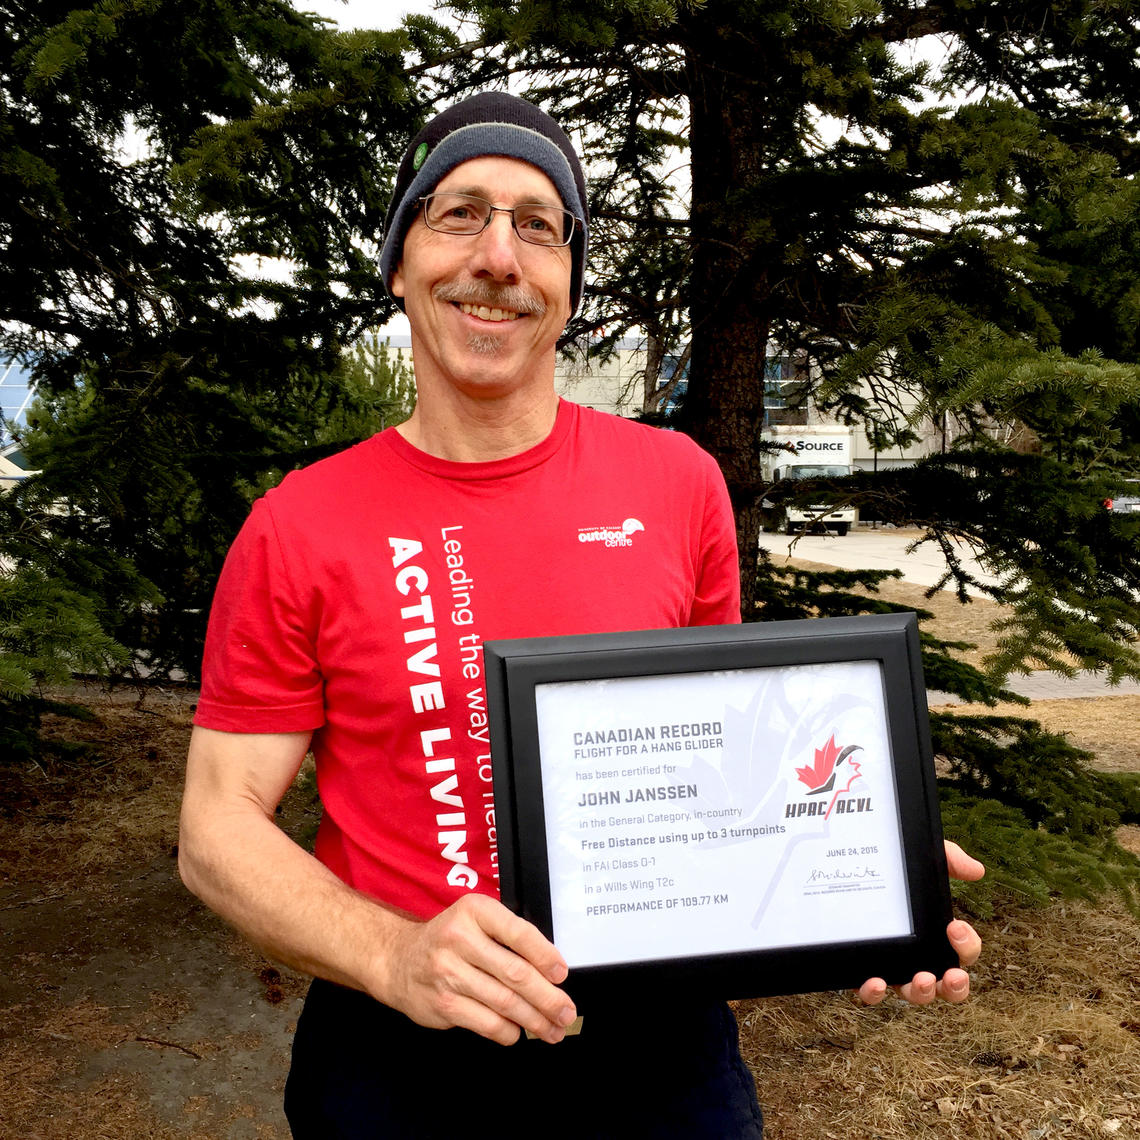 John Janssen shows his official Canadian Record certificate.